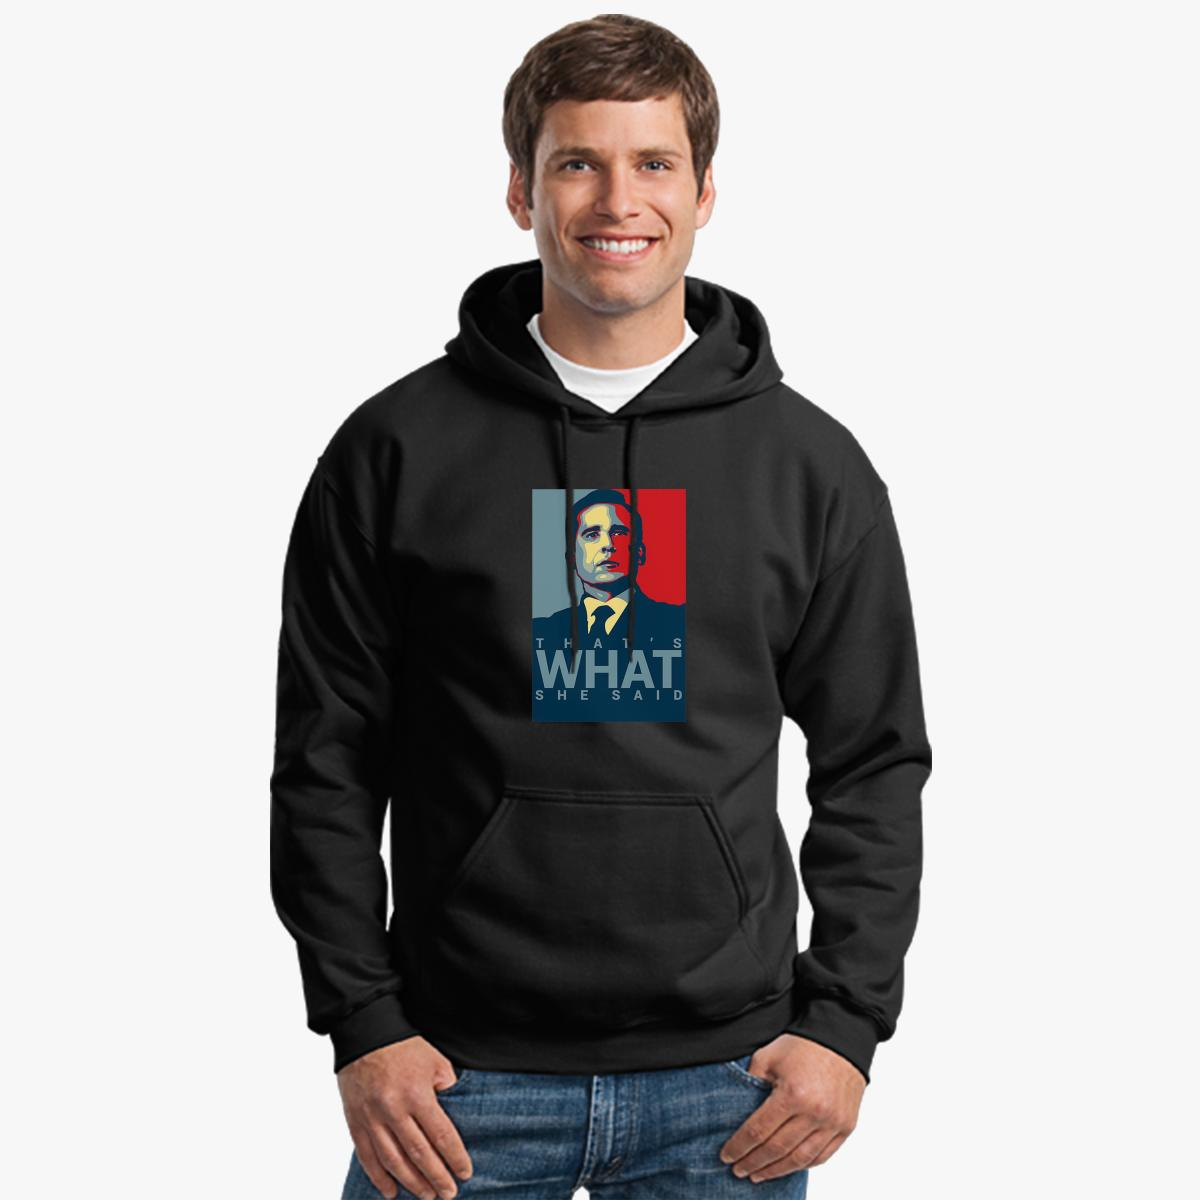 That's What She Said Hoodie qucgT2nHcN